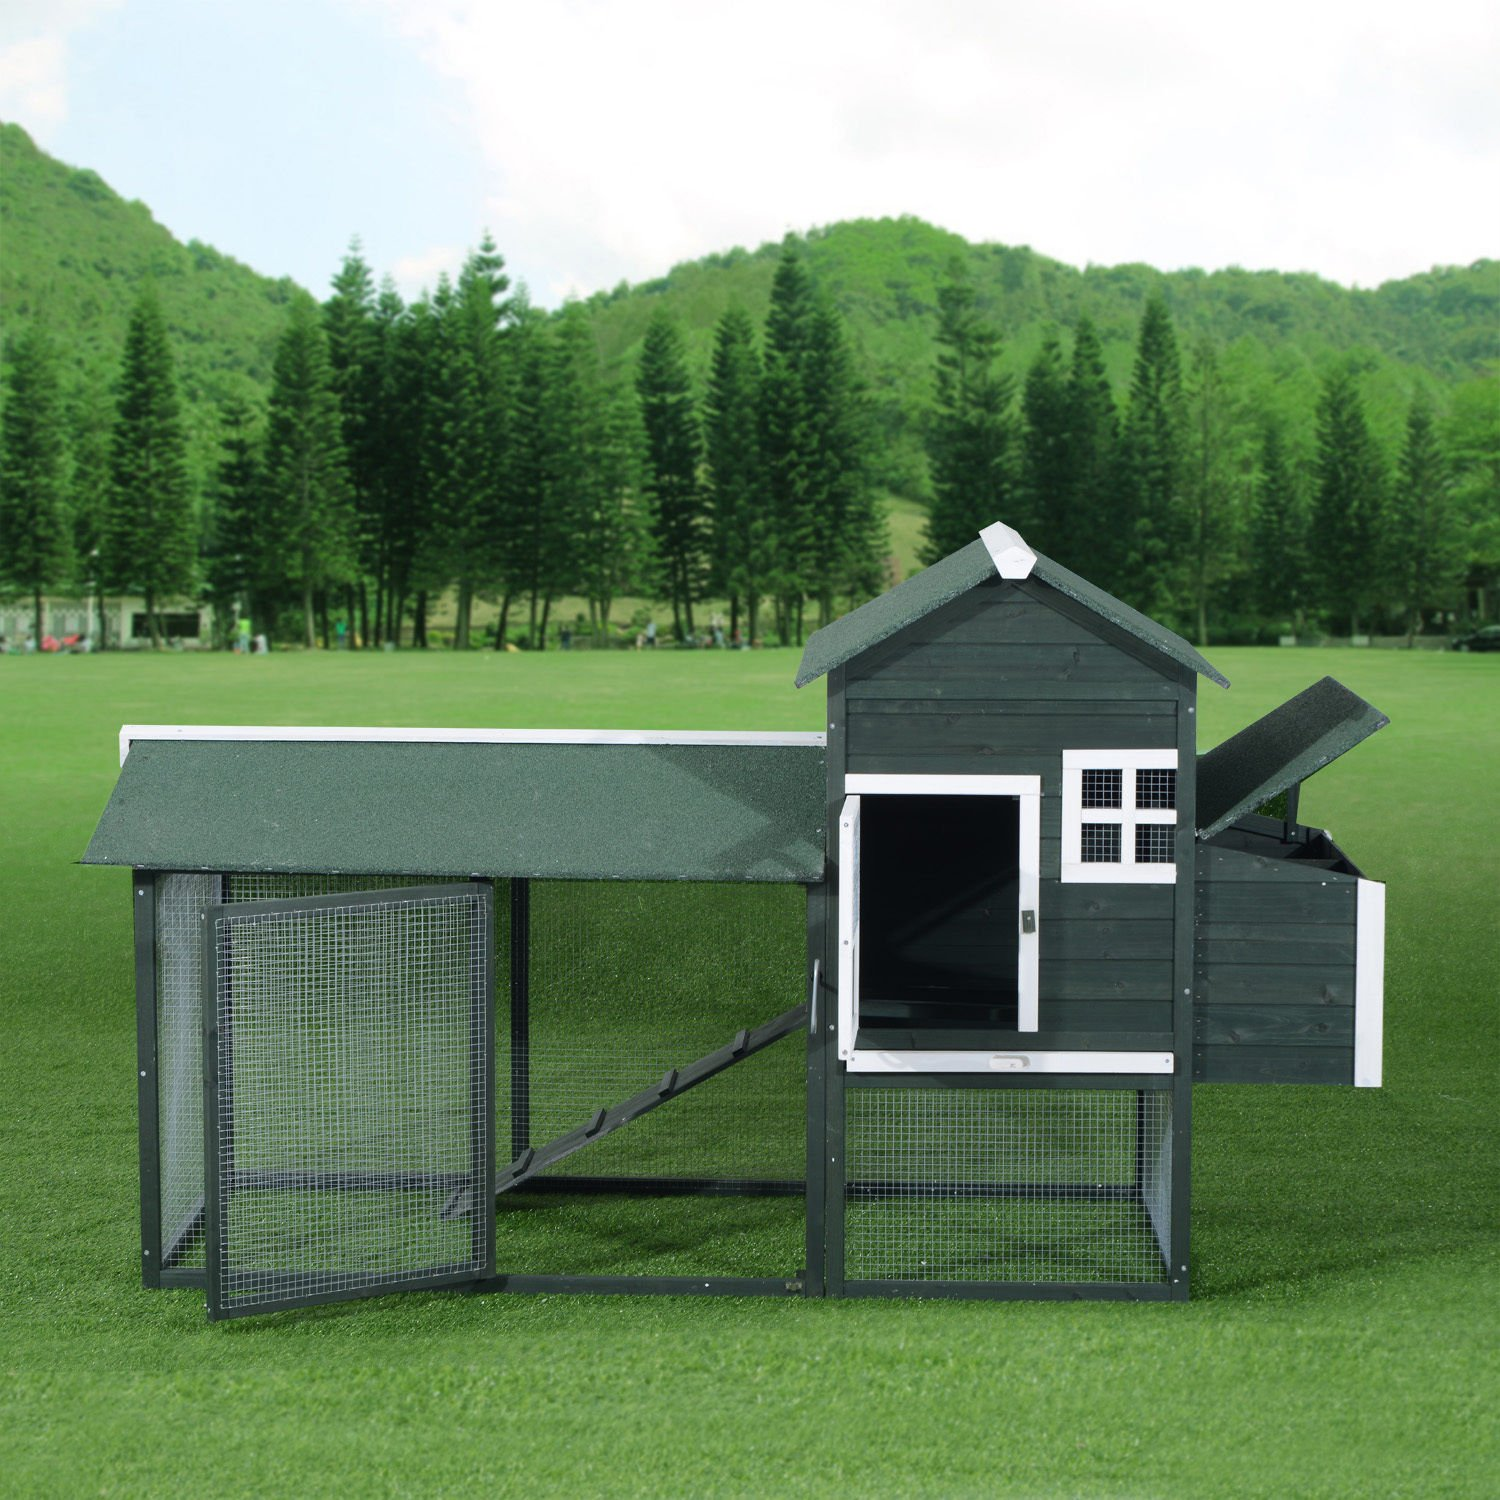 Pawhut Wooden Backyard Poultry Hen House Chicken Coop - Green by PawHut (Image #4)